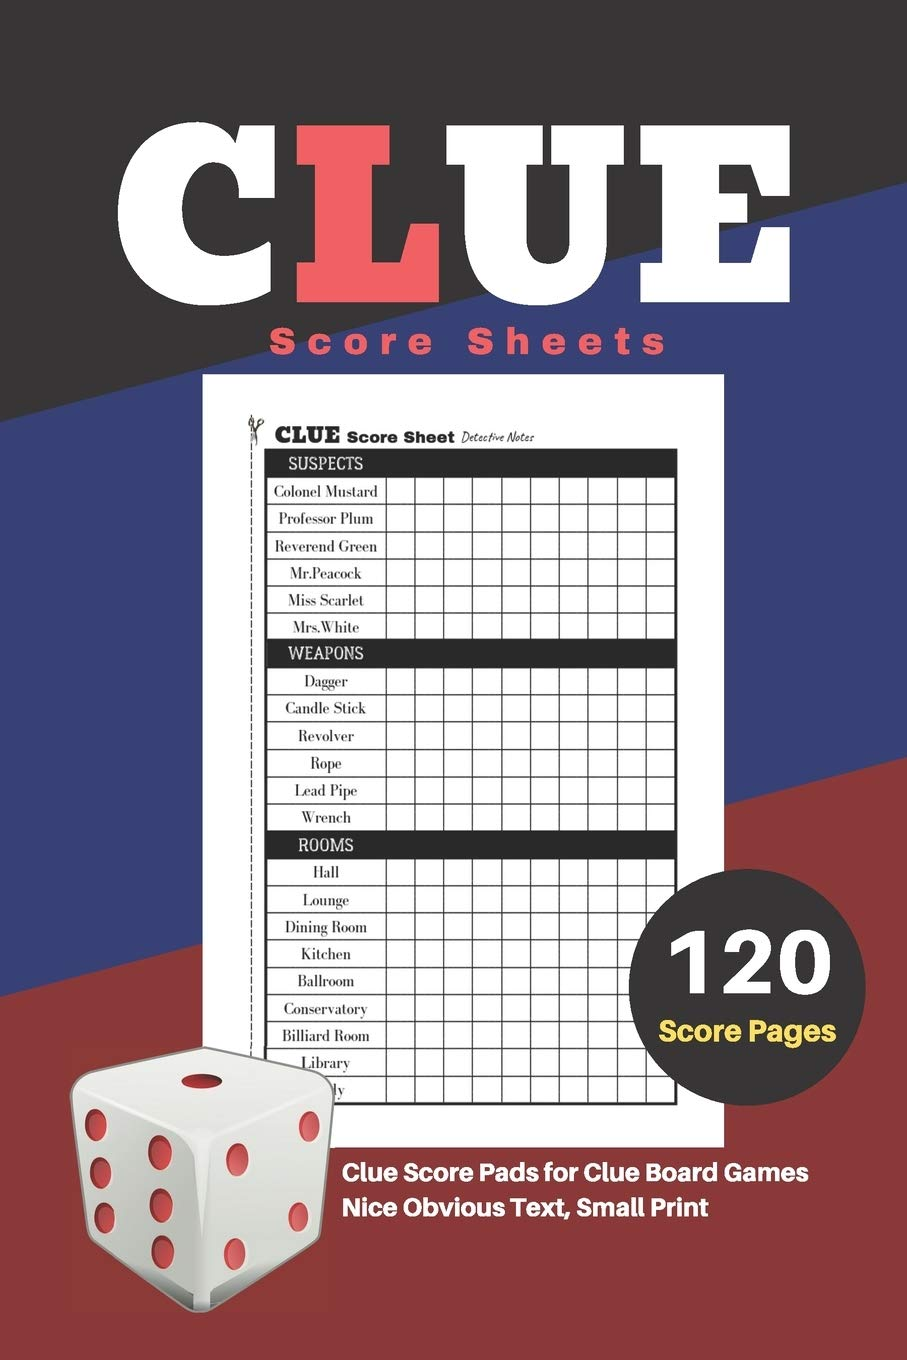 Clue Score Sheets: V.1 Clue Score Pads for Clue Board Games Nice Obvious Text, Small Print 6*9 inch, 120 Score pages: Amazon.es: Scoresheet, DHC: Libros en idiomas extranjeros